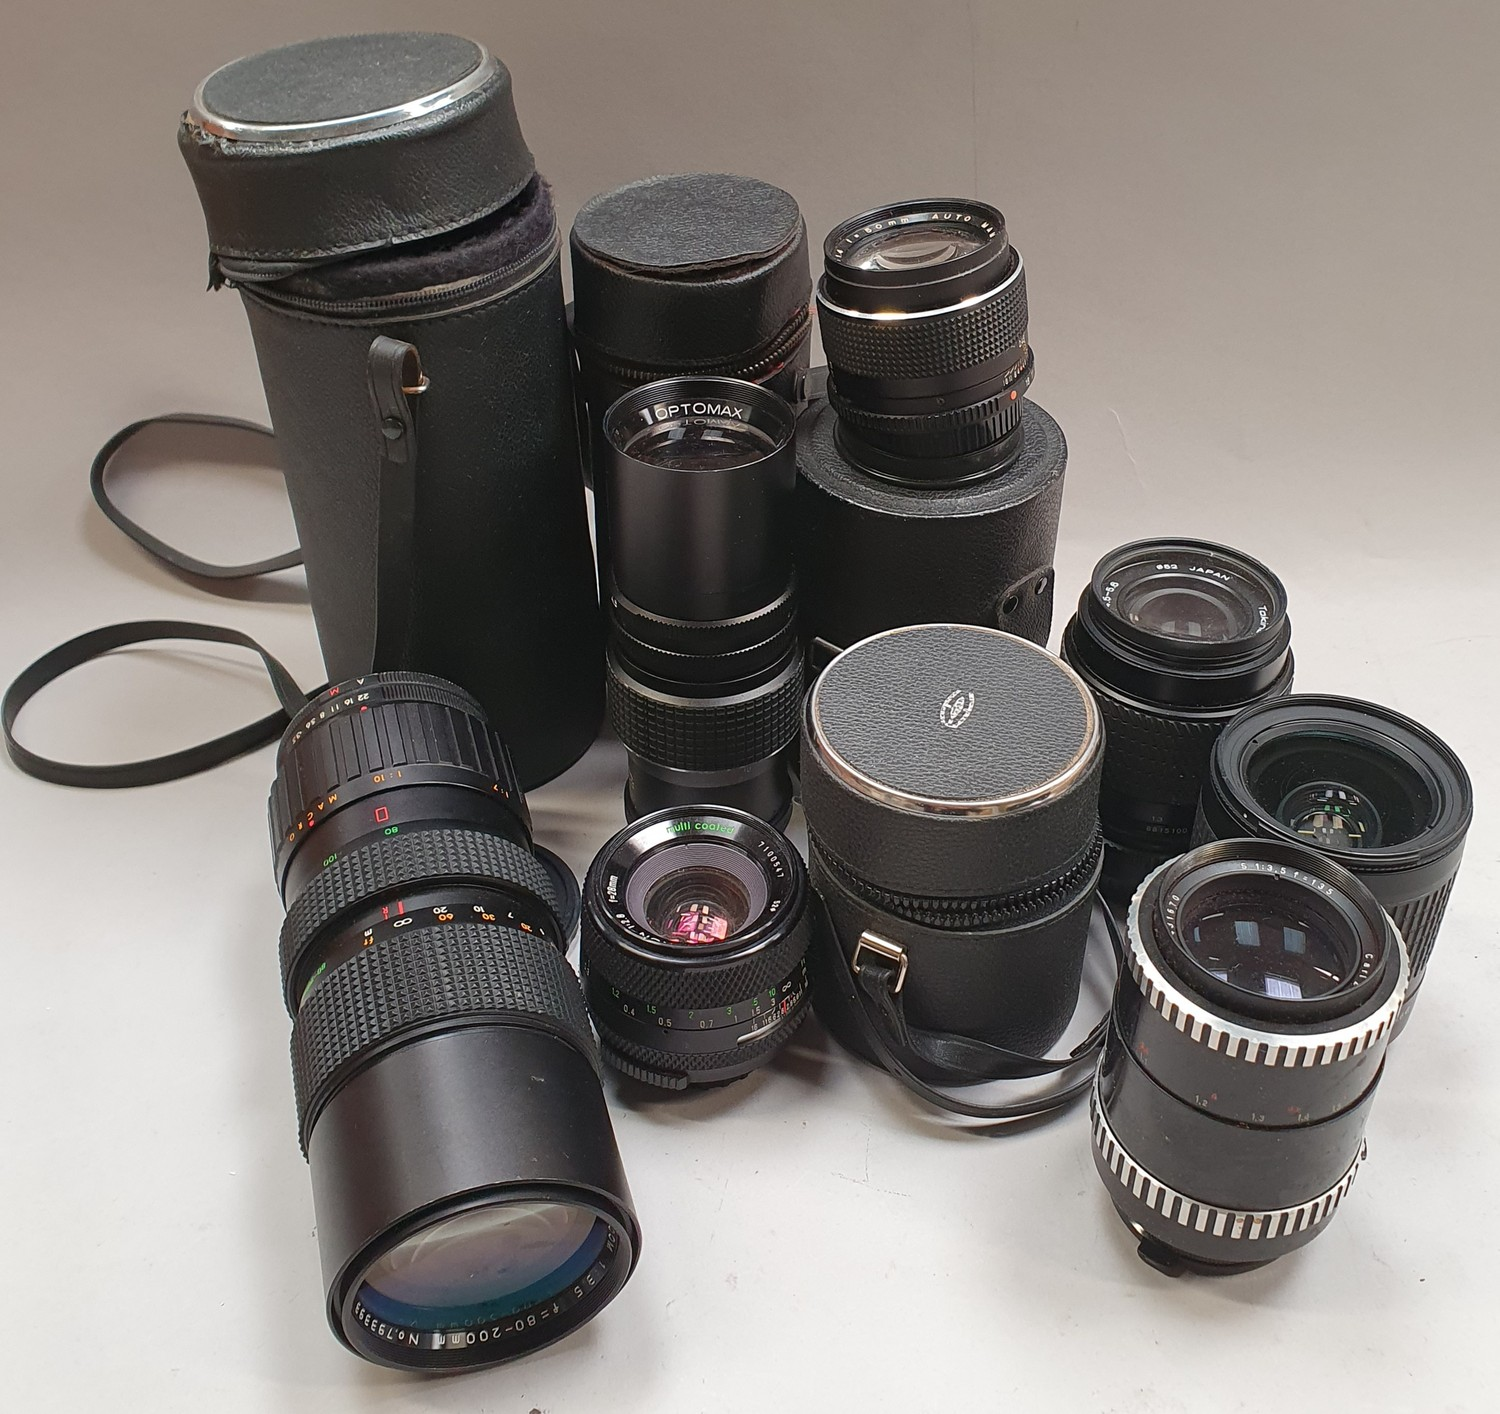 A collection of camera lenses to include Optomax, Nikon etc.